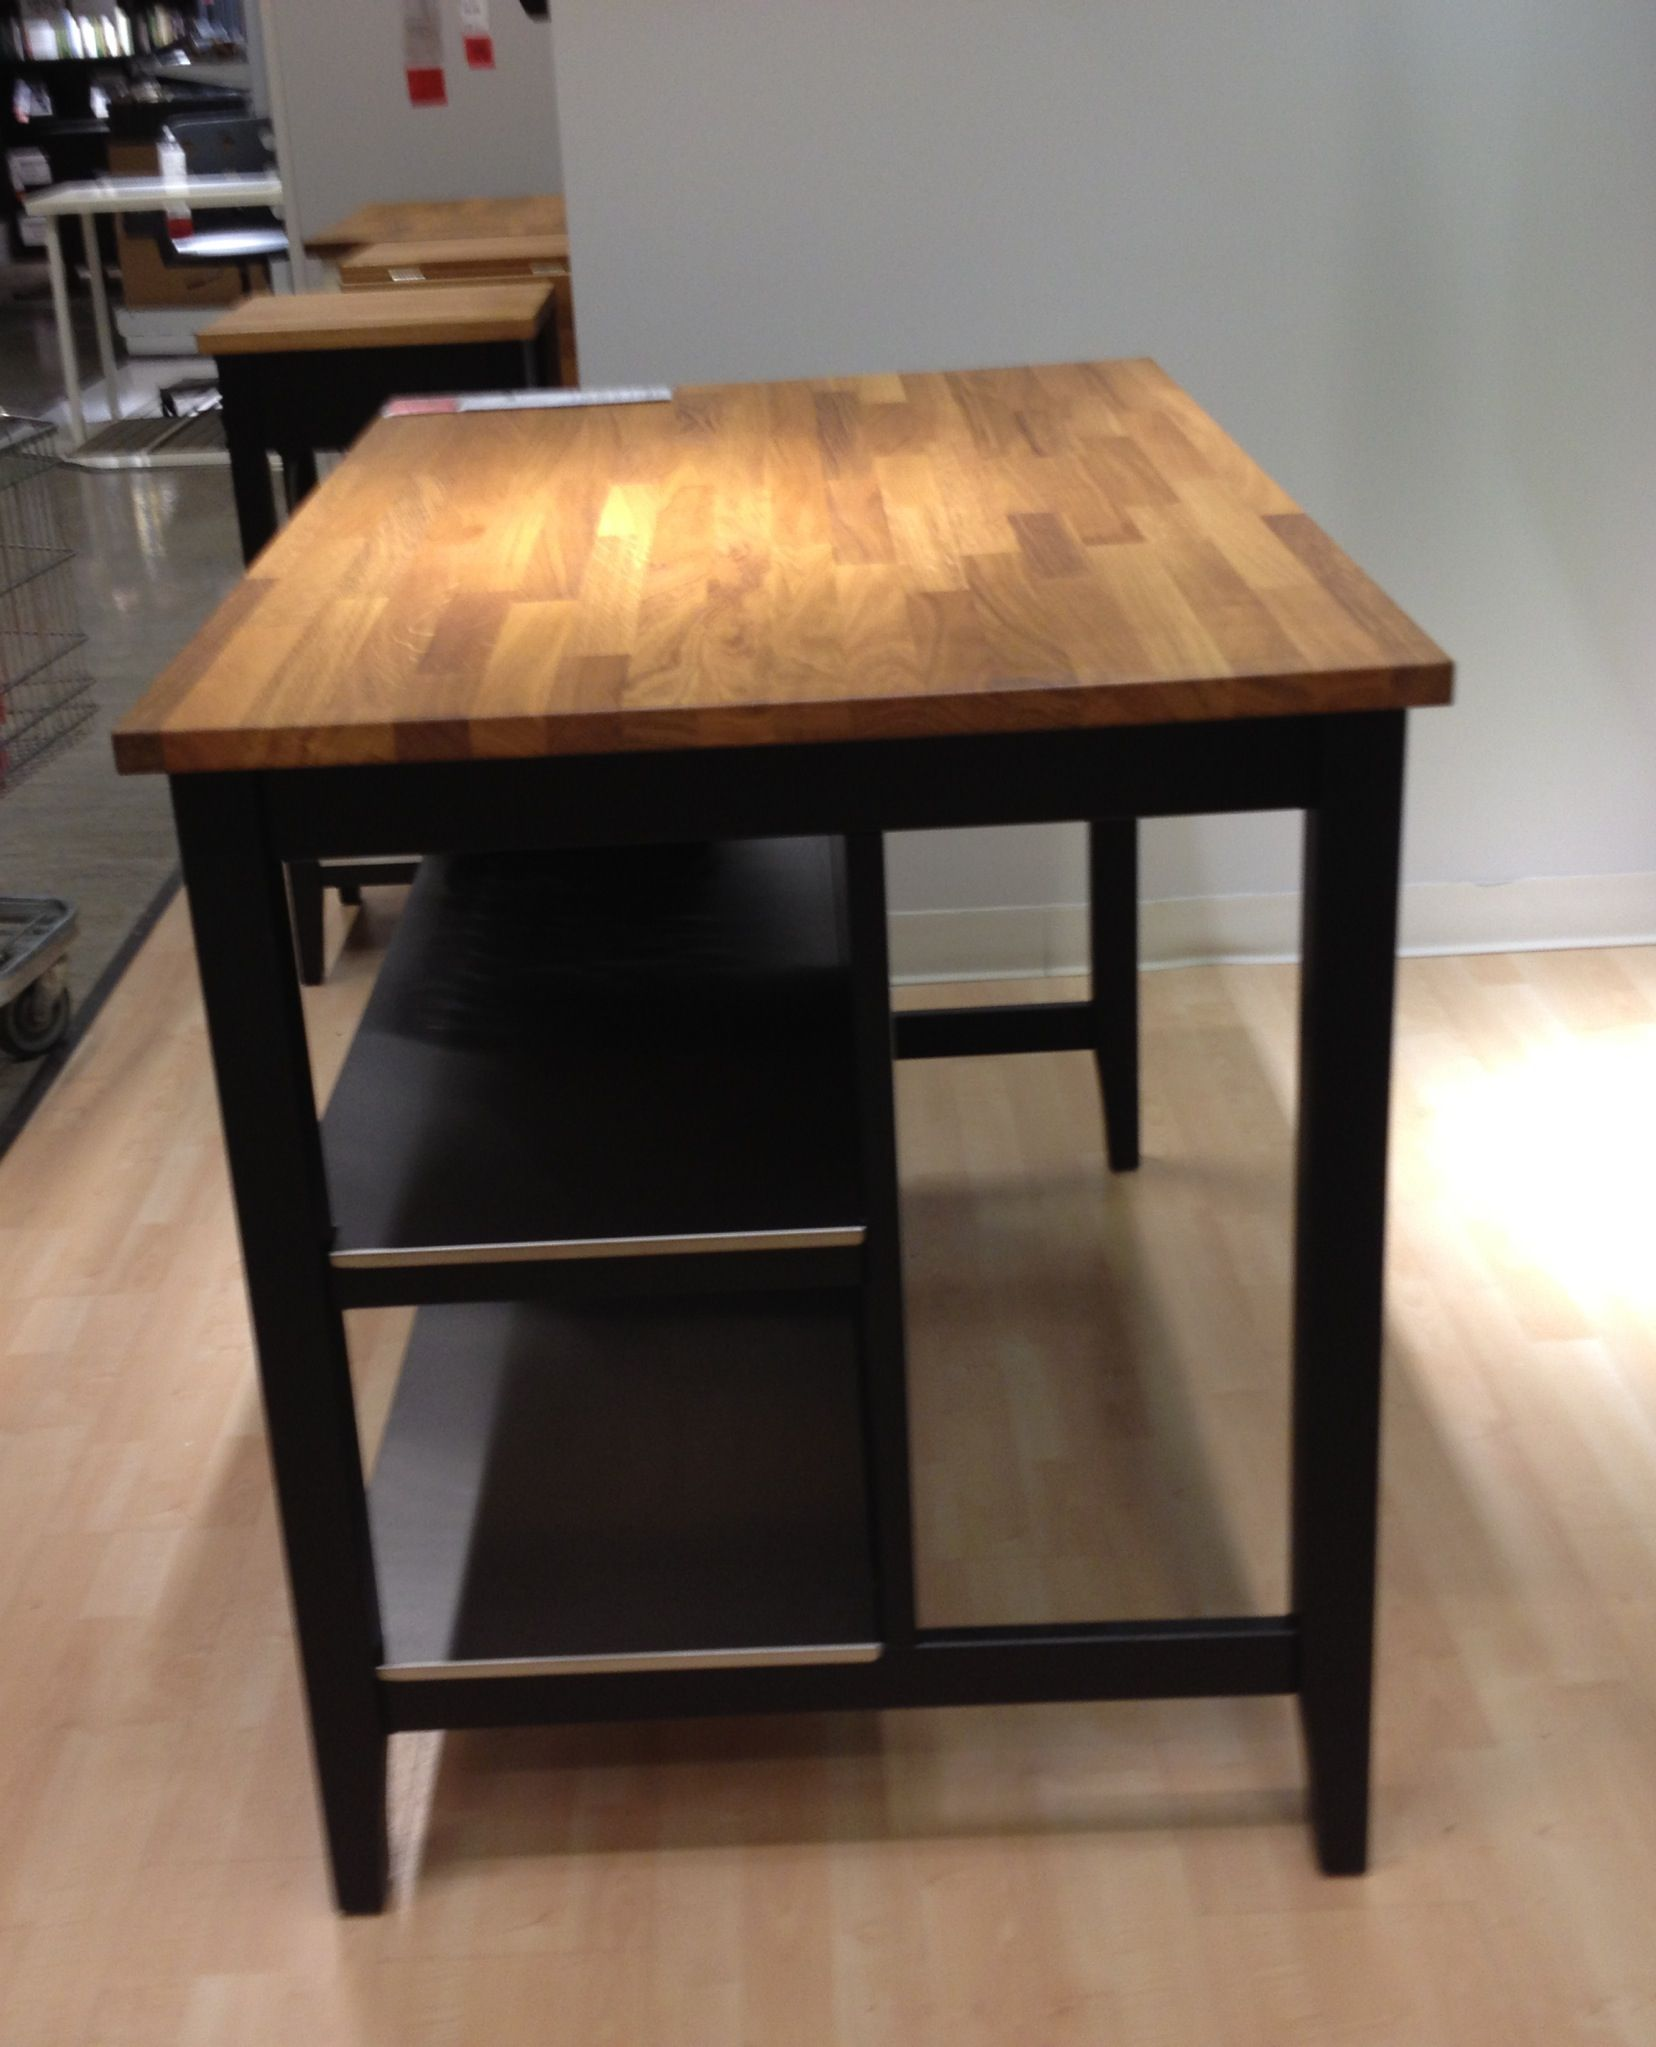 kitchen island table ikea upper cabinets stenstorp 399 would be good for welcome center